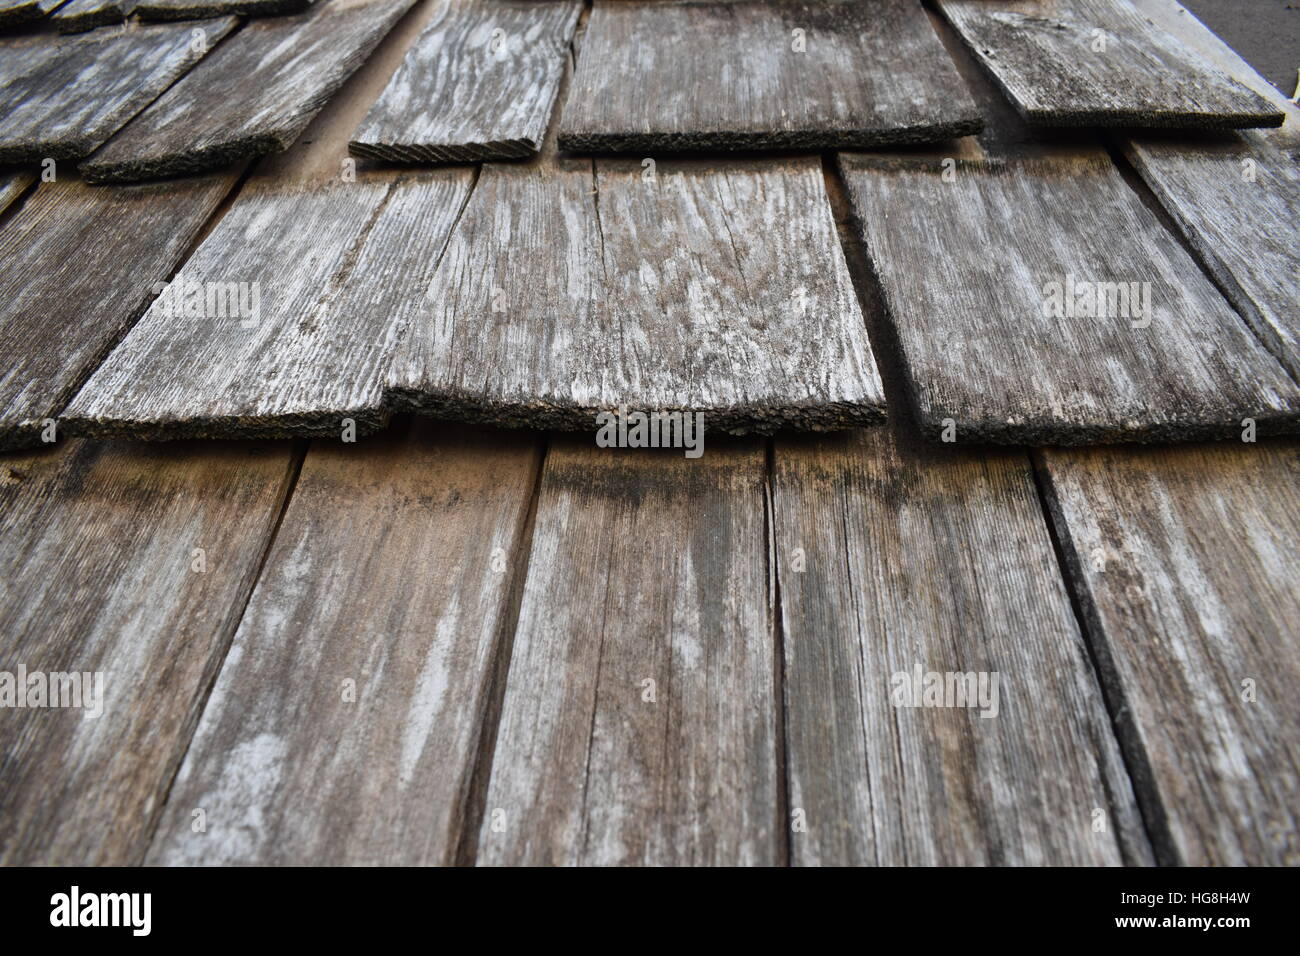 Wooden Roof Tiles Weathered Stock Photo 130496153 Alamy